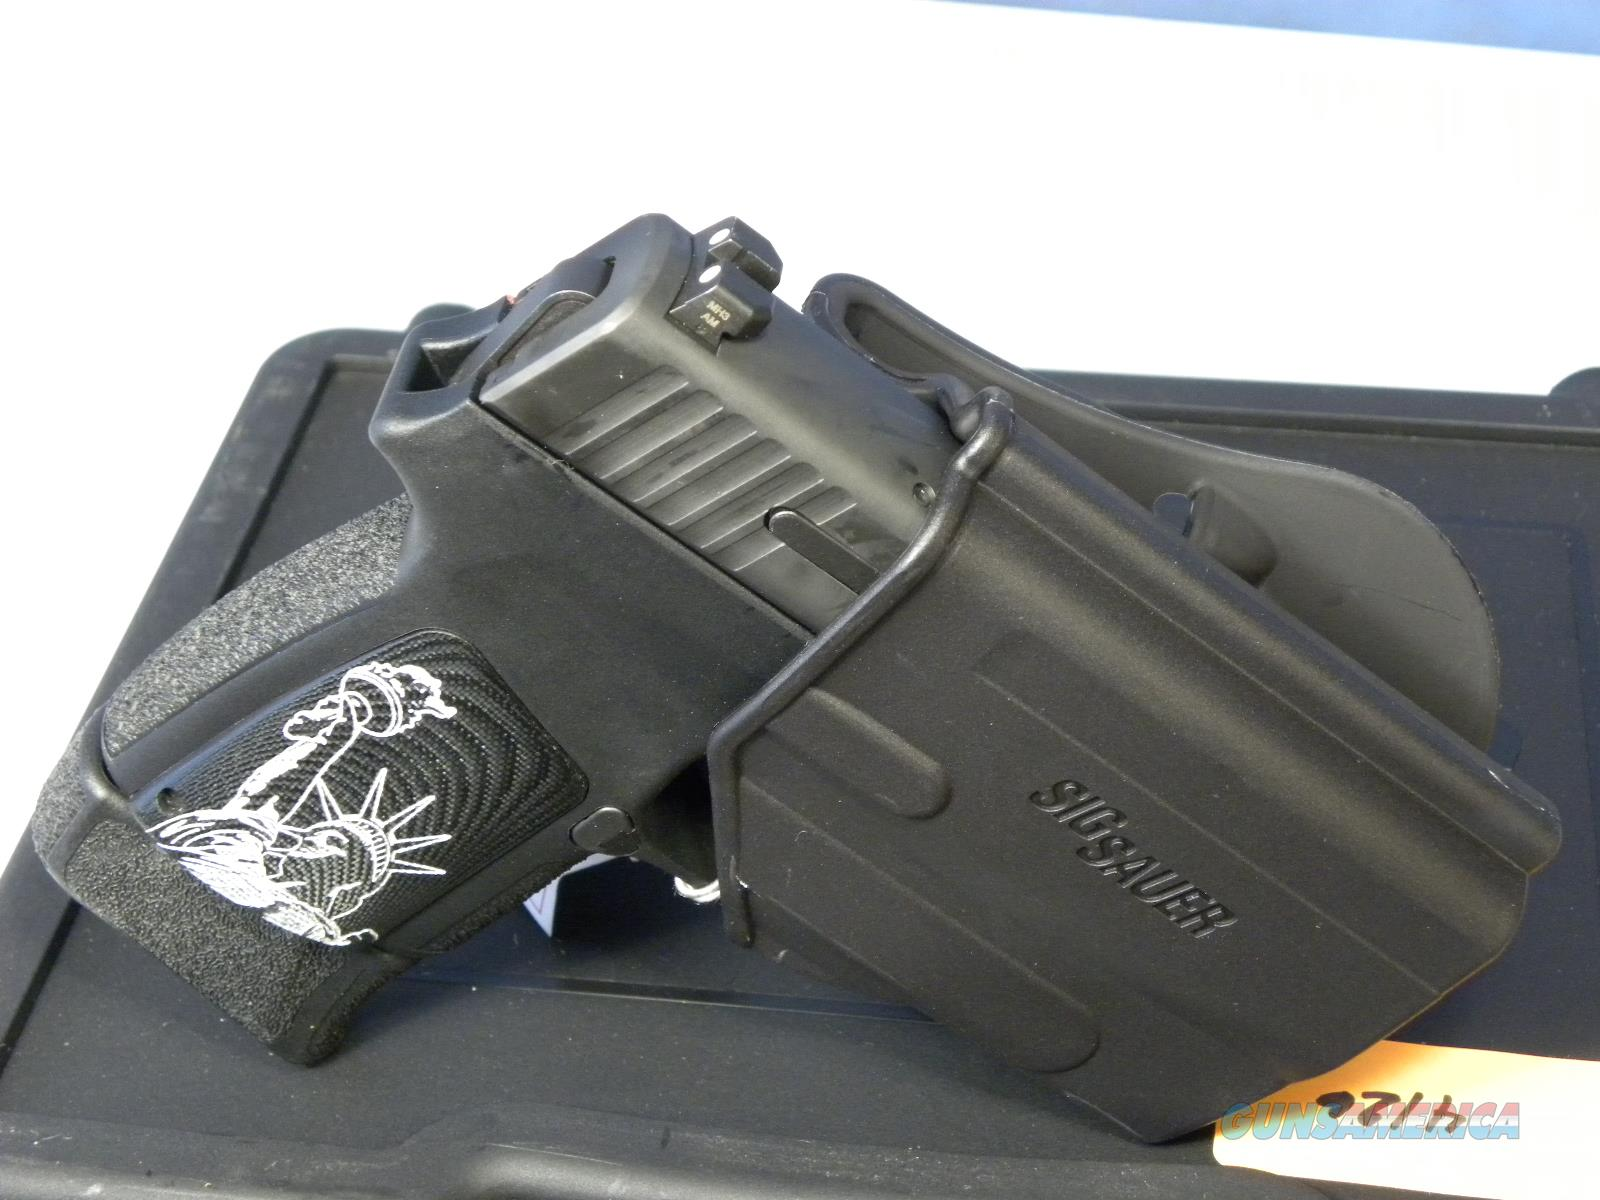 Sig Sauer 290RS-9-Liberty Edition  Guns > Pistols > Sig - Sauer/Sigarms Pistols > P290